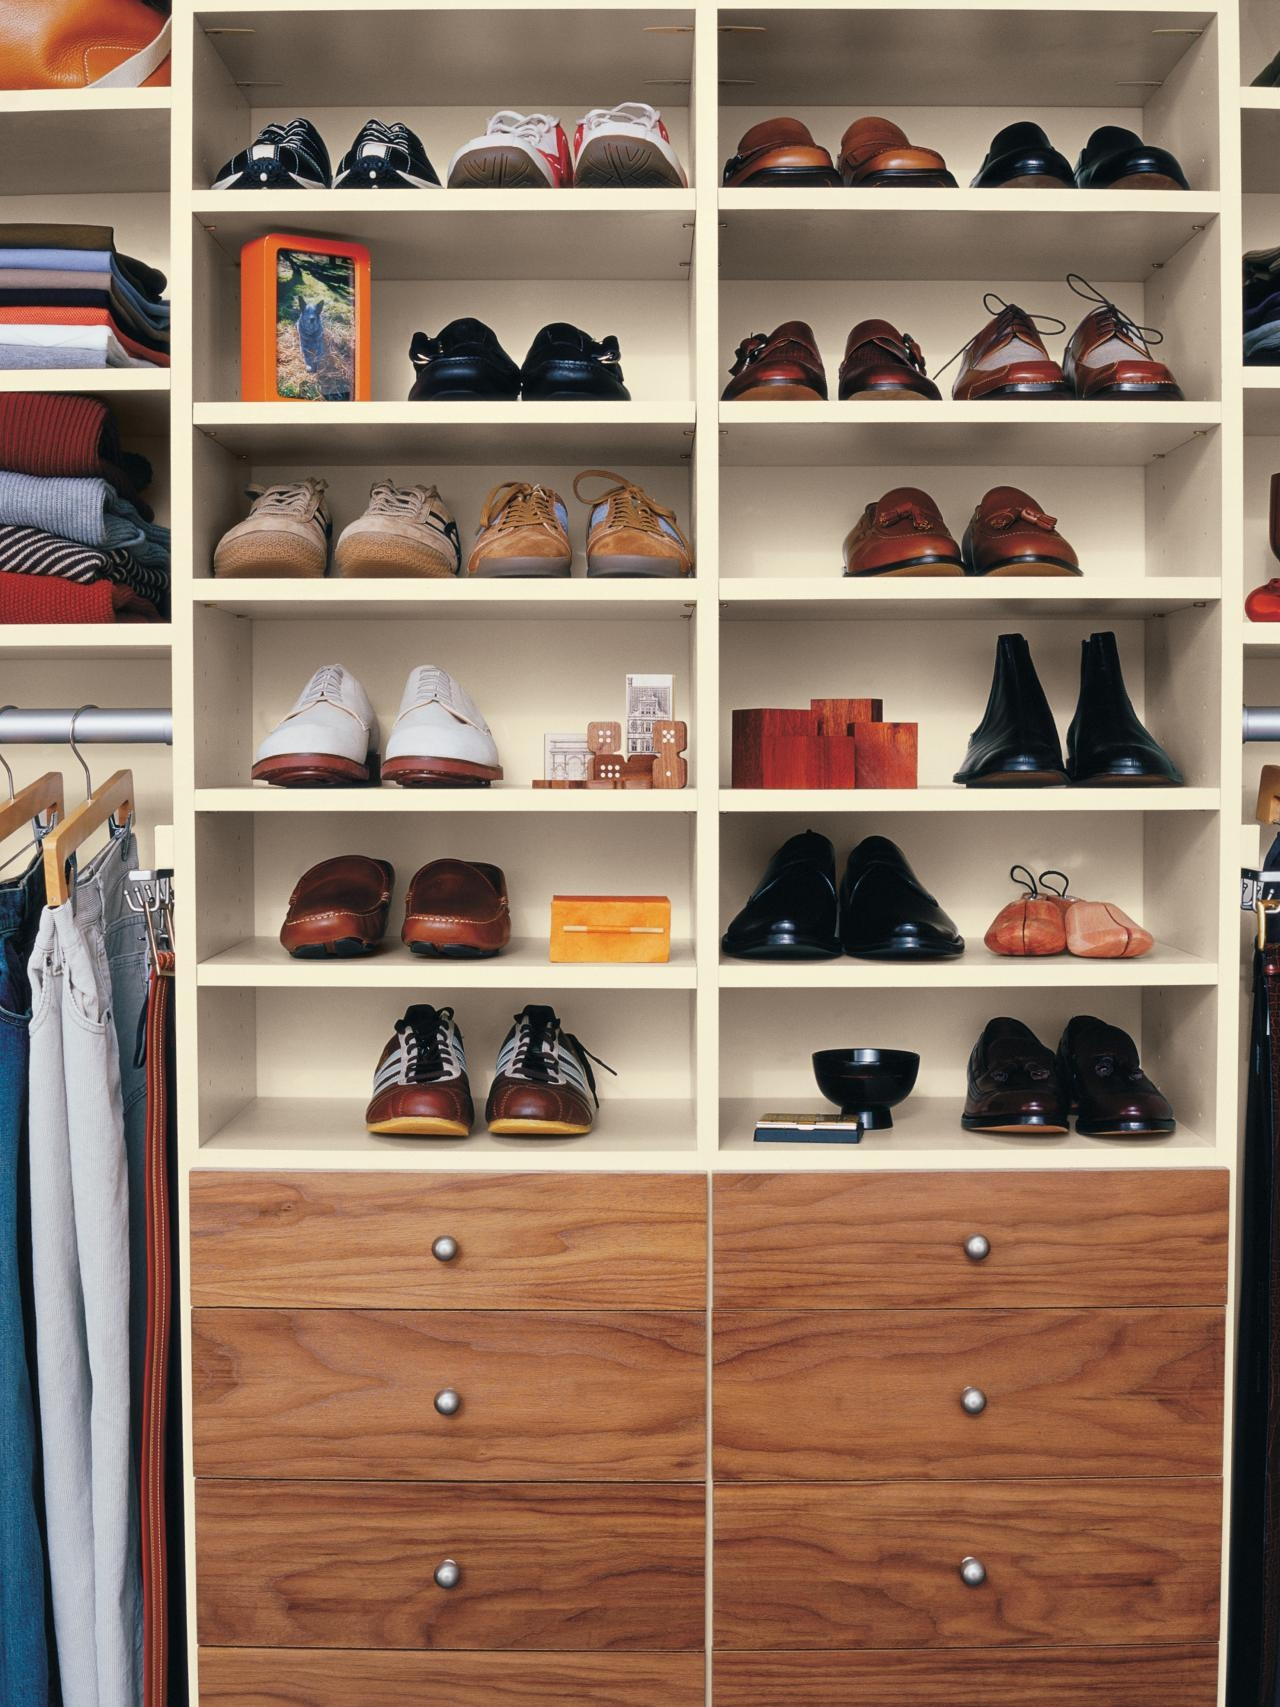 Shoe Storage And Organization Ideas Pictures Tips Options Hgtv Regarding Wardrobe Shoe Storages (Image 22 of 25)